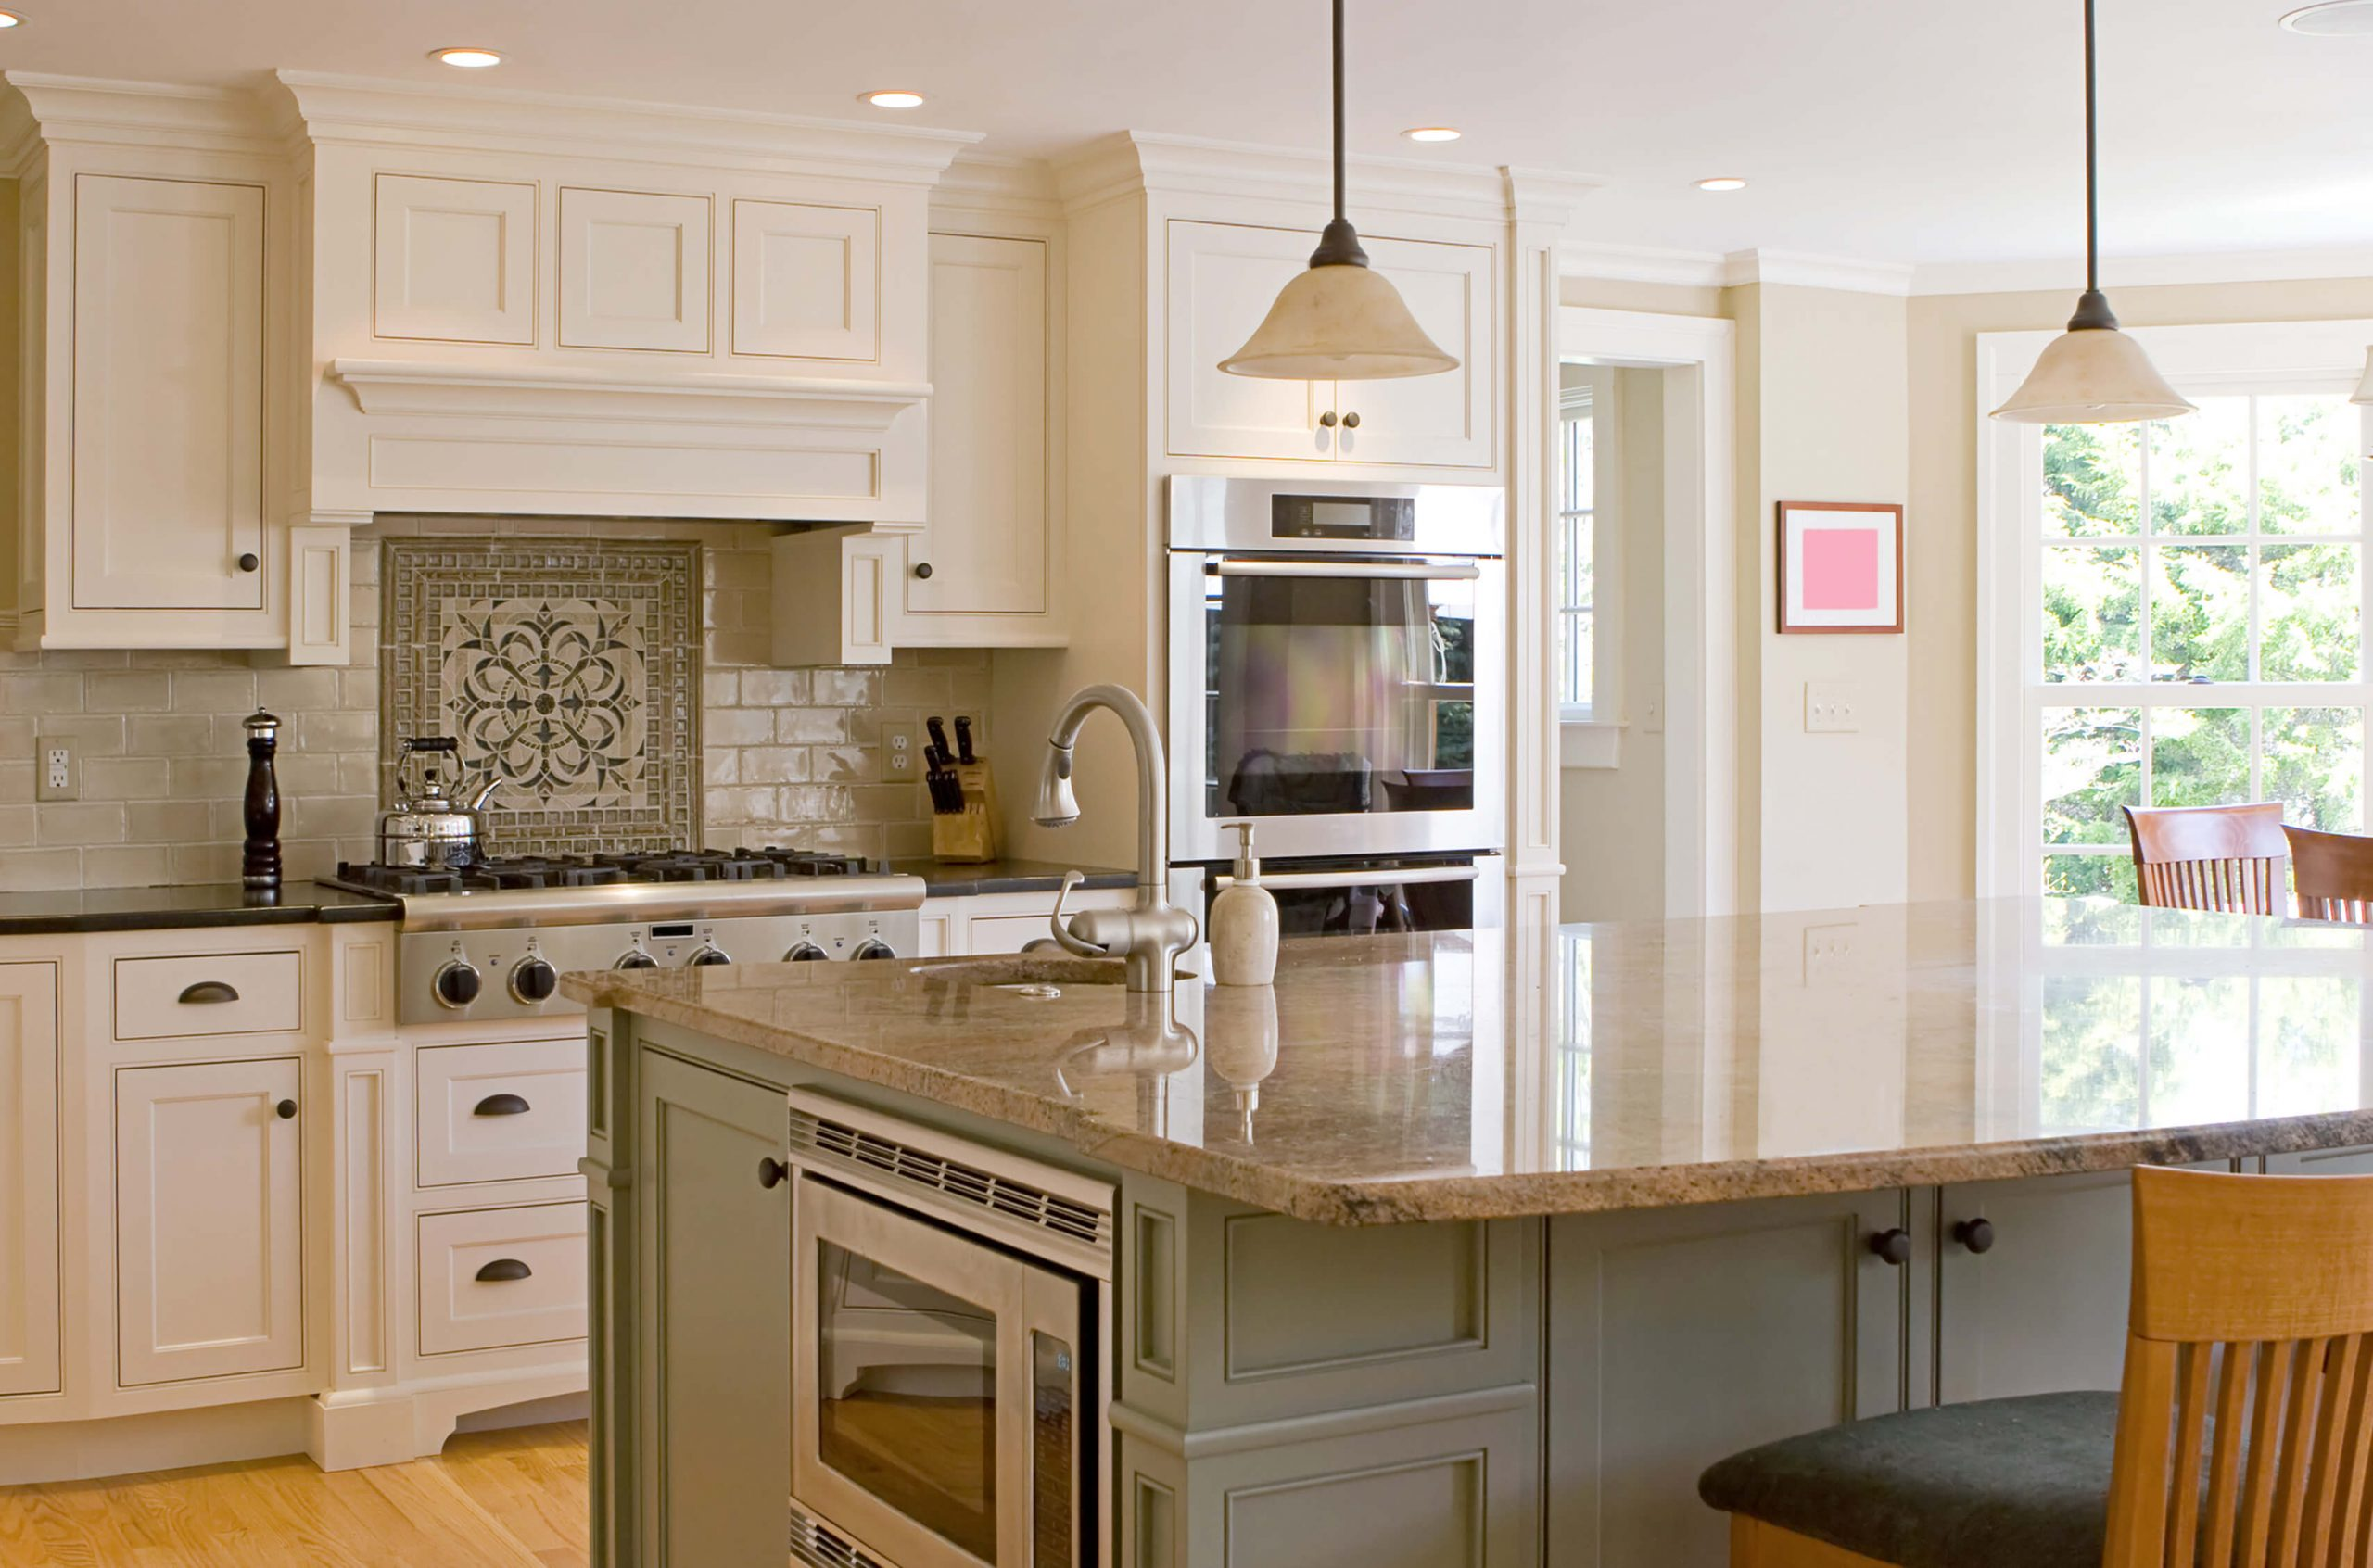 https://www.stonecabinetworks.com/wp-content/uploads/2020/08/White-kitchen-cabinets-scaled.jpg